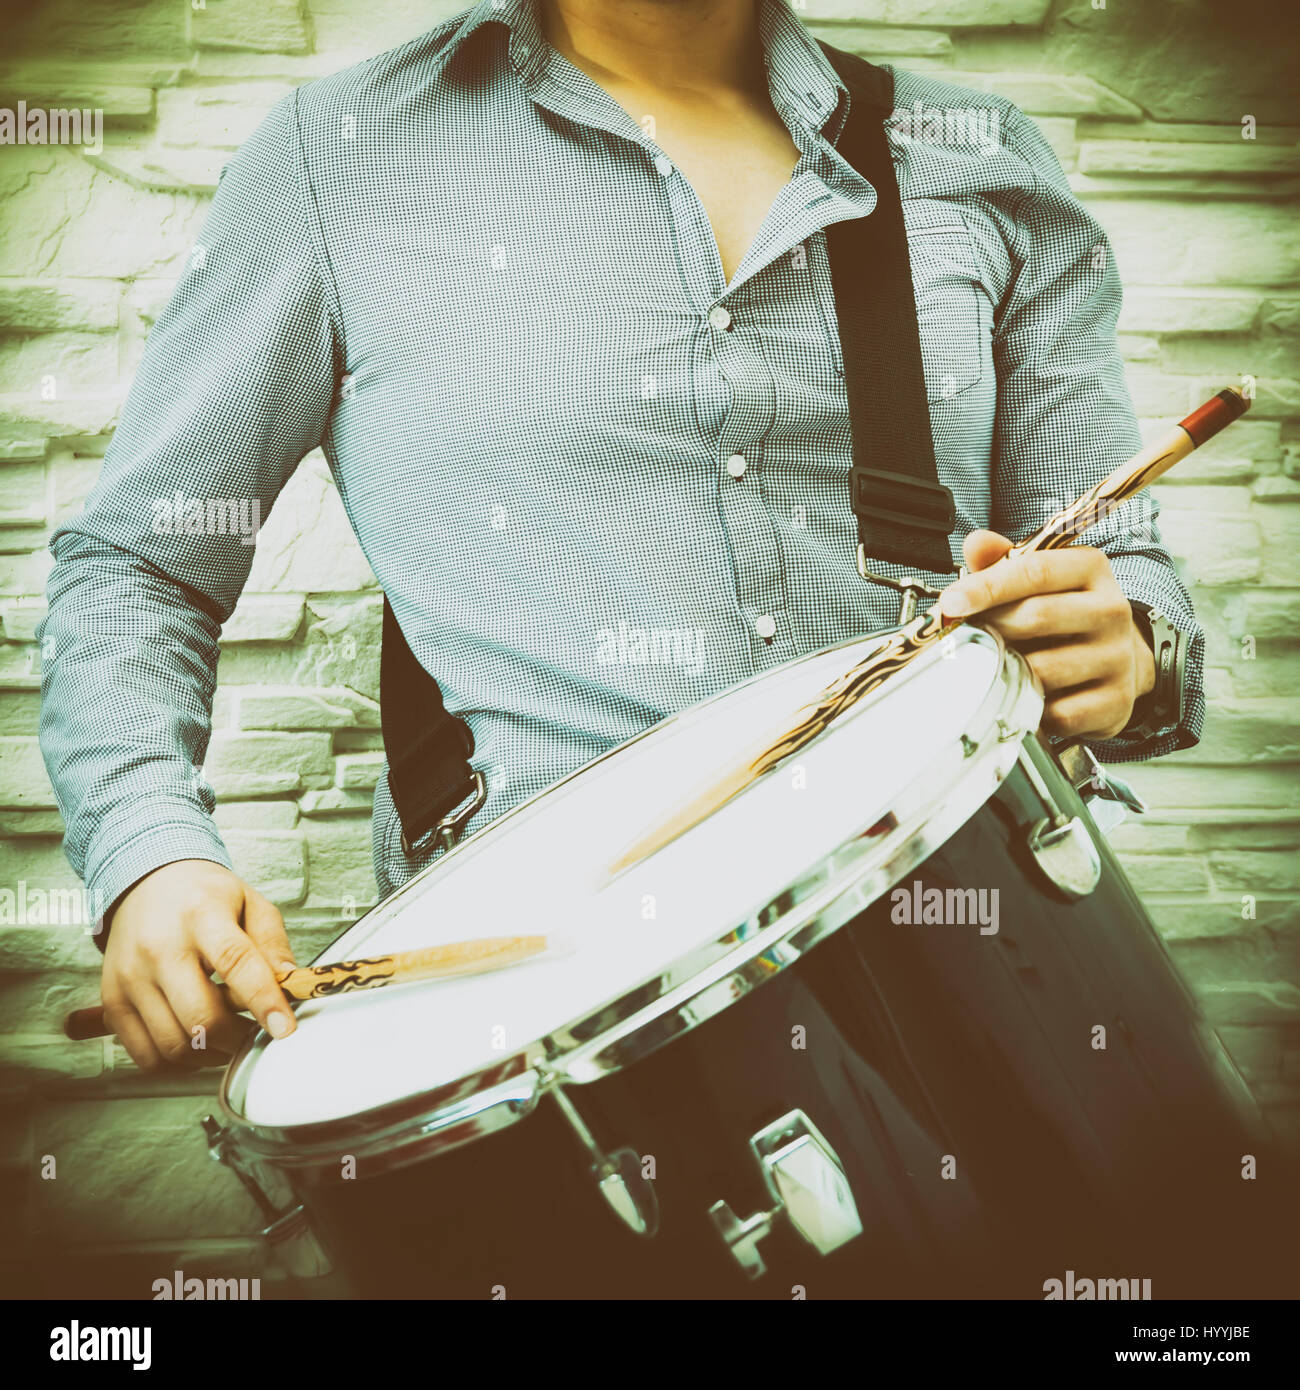 Snare Drum Stock Photos & Snare Drum Stock Images - Alamy